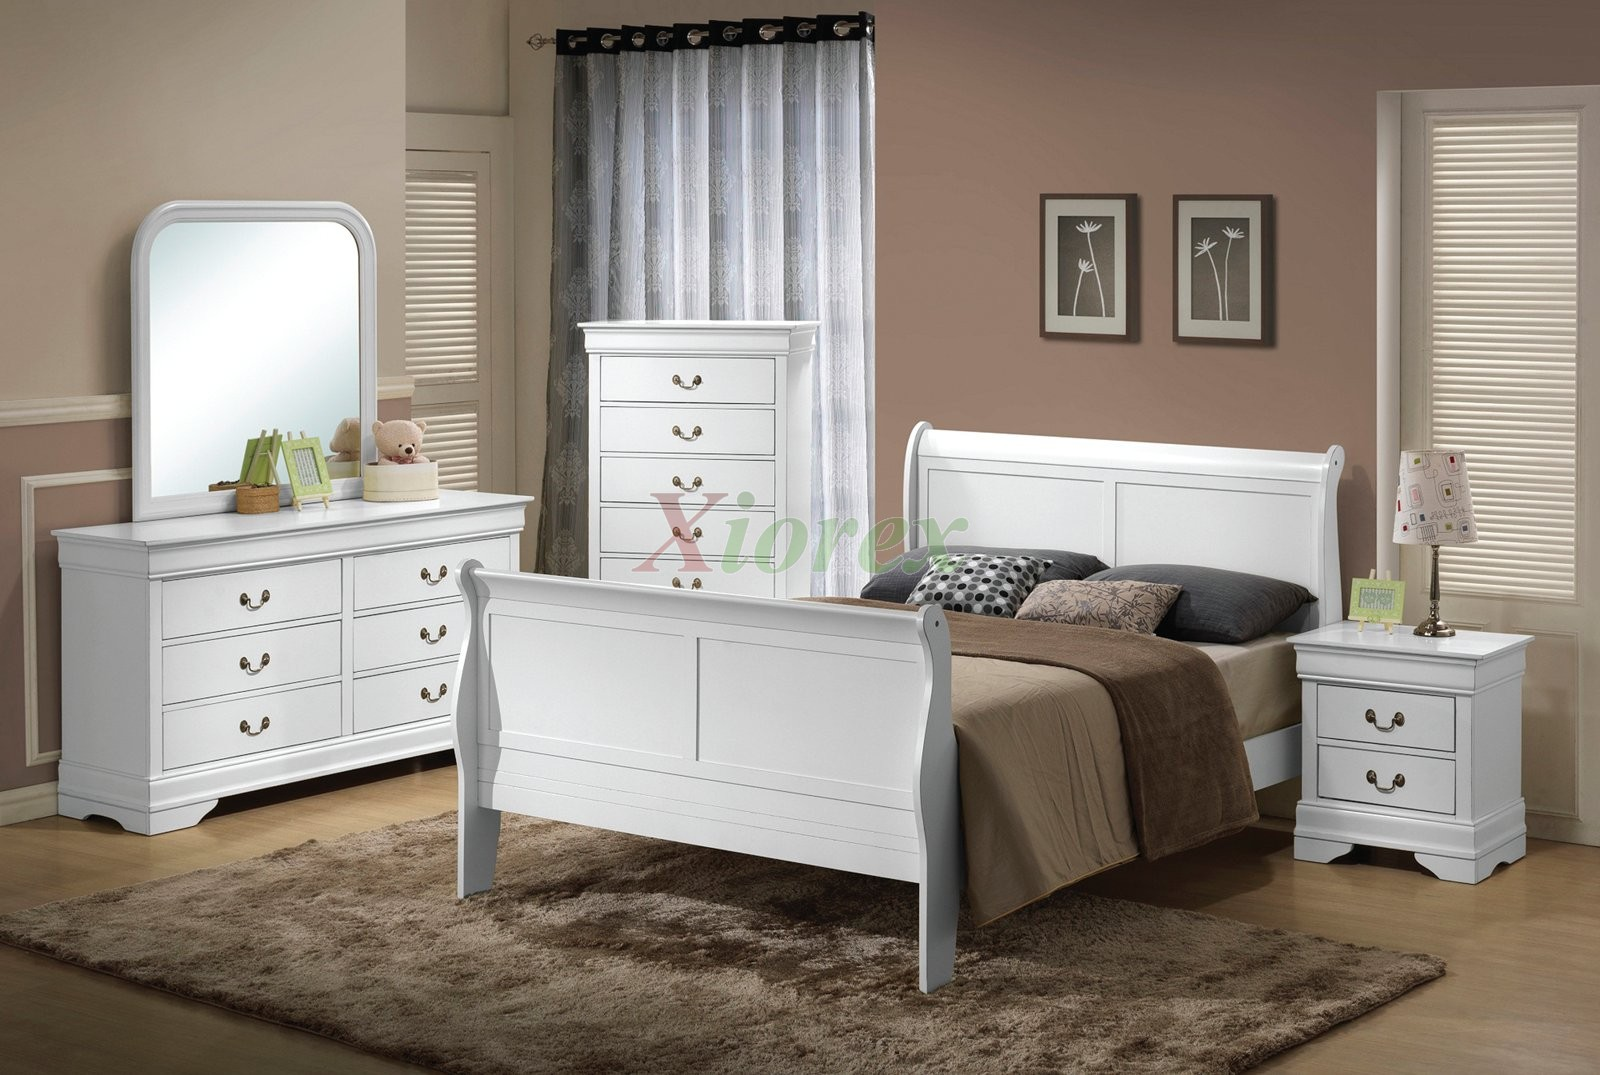 Semi Gloss White Bedroom Suite 170 W Sleigh Like Queen And King Beds